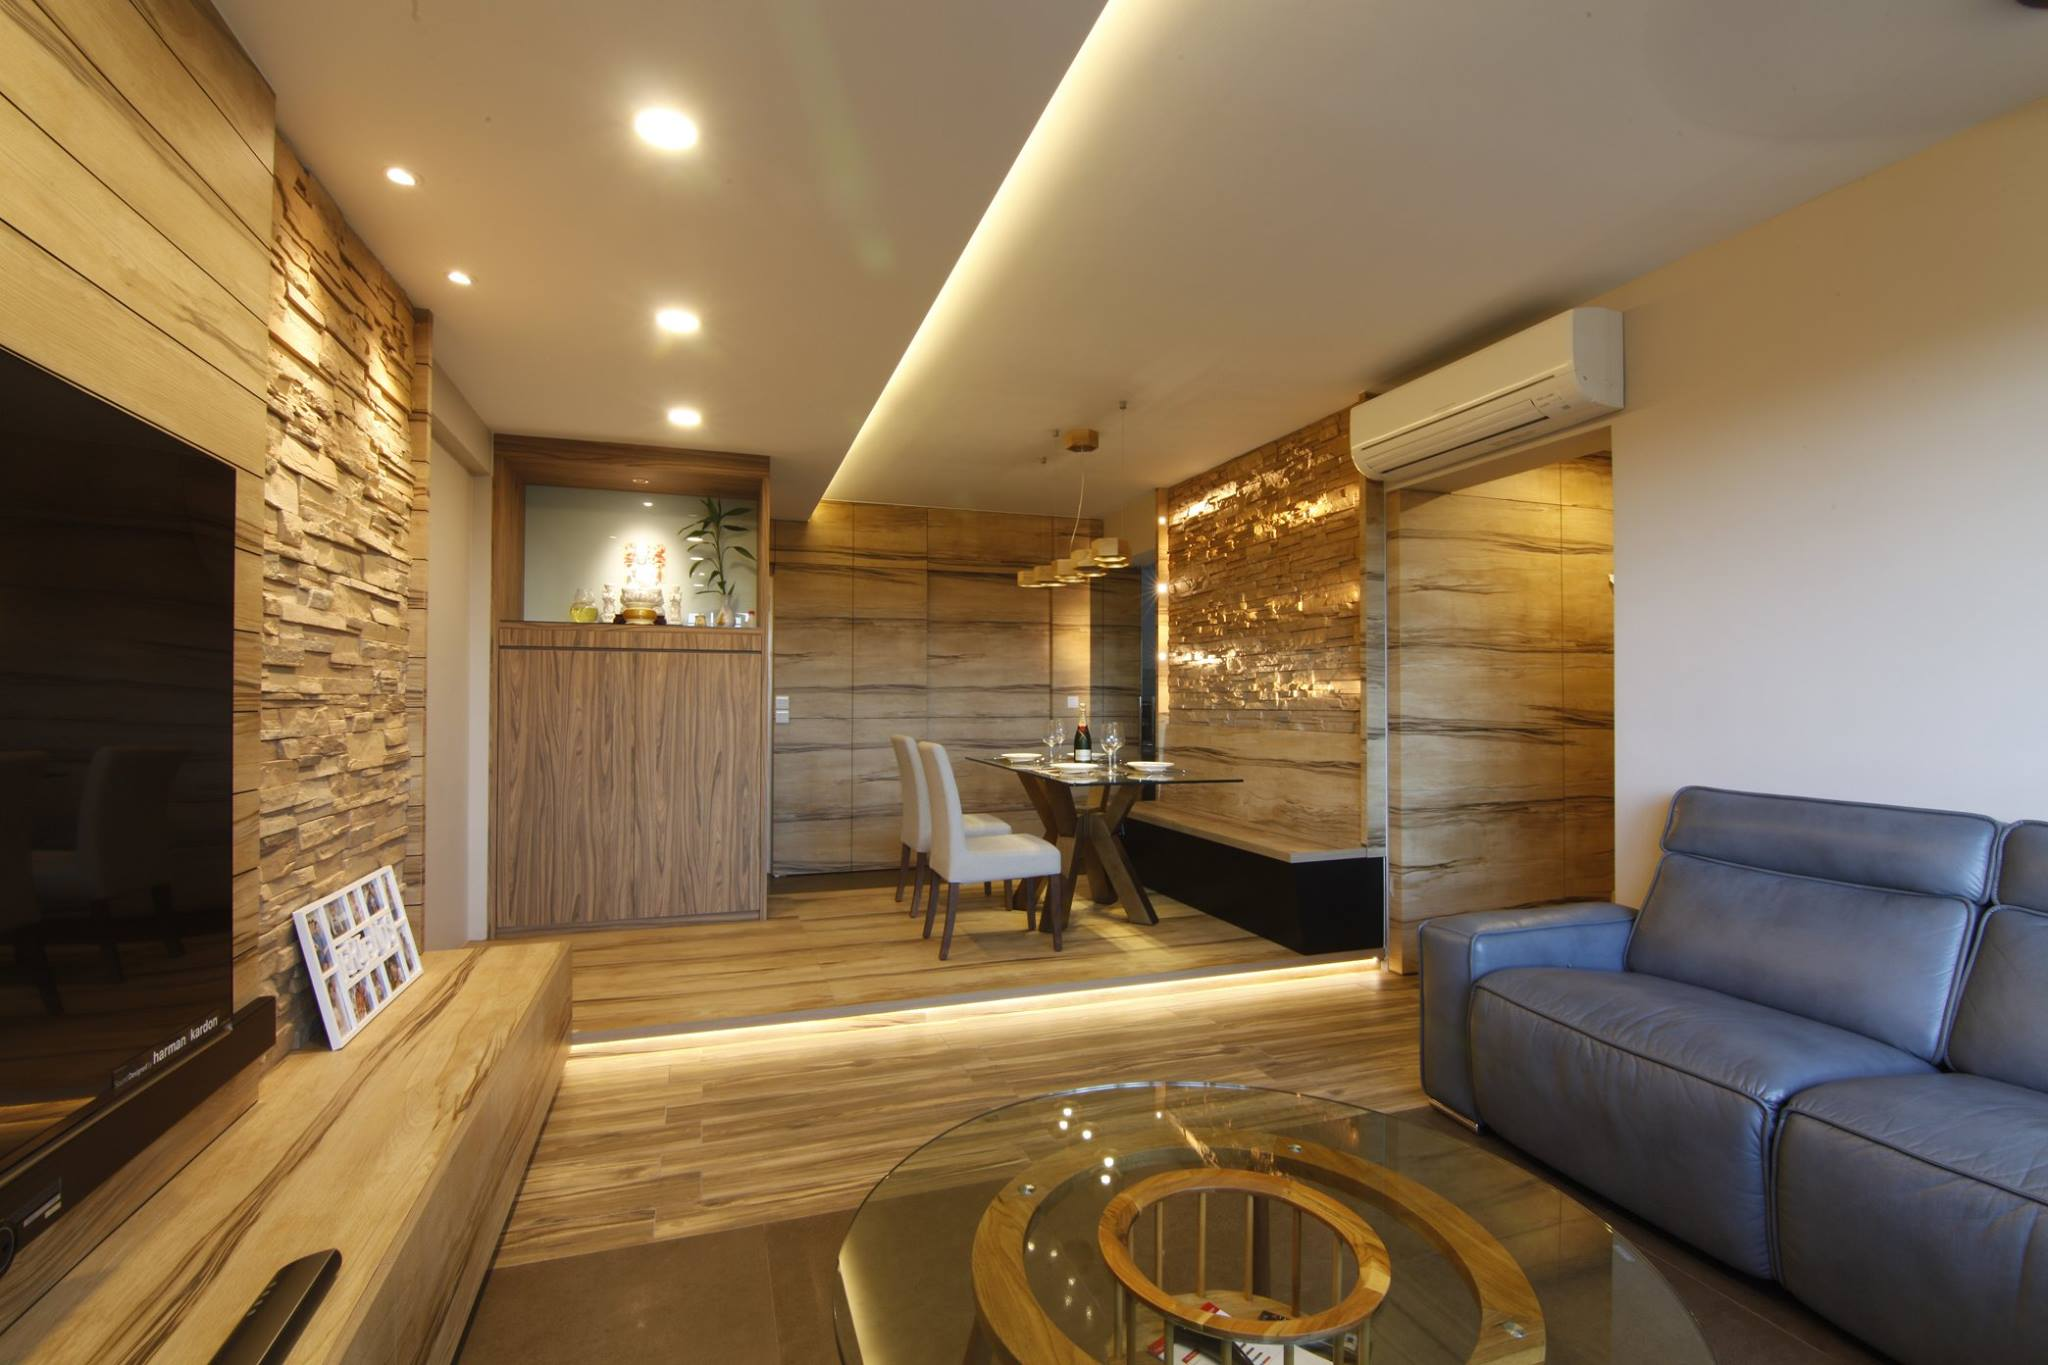 Luxurious Interior Design Meaning for Latest Design Ideas ...